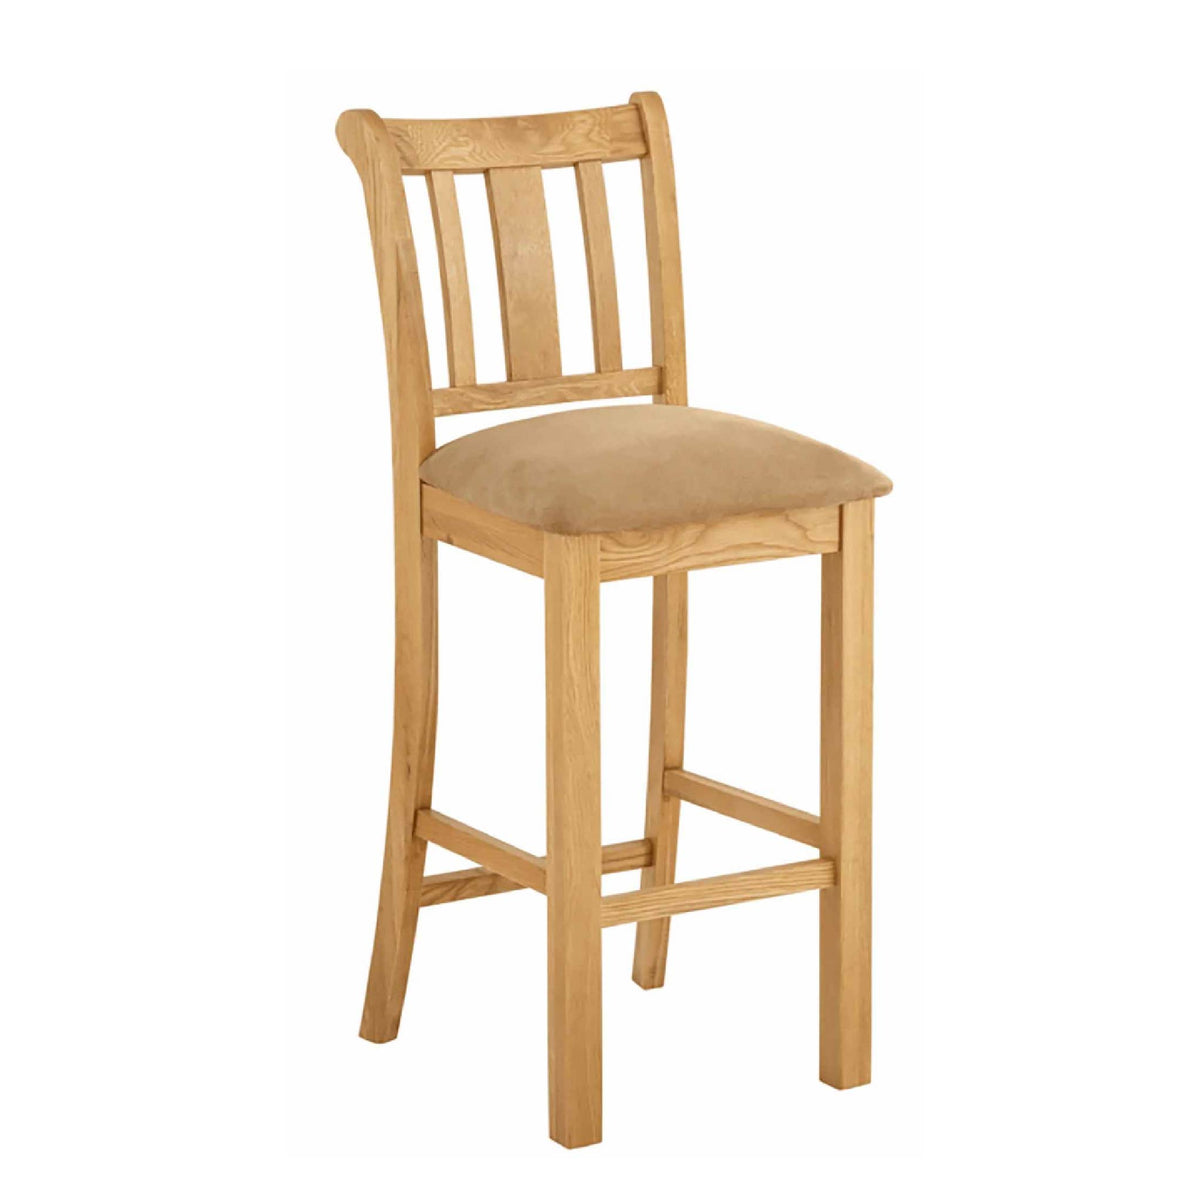 Roseland Oak Bar stool by Roseland Furniture